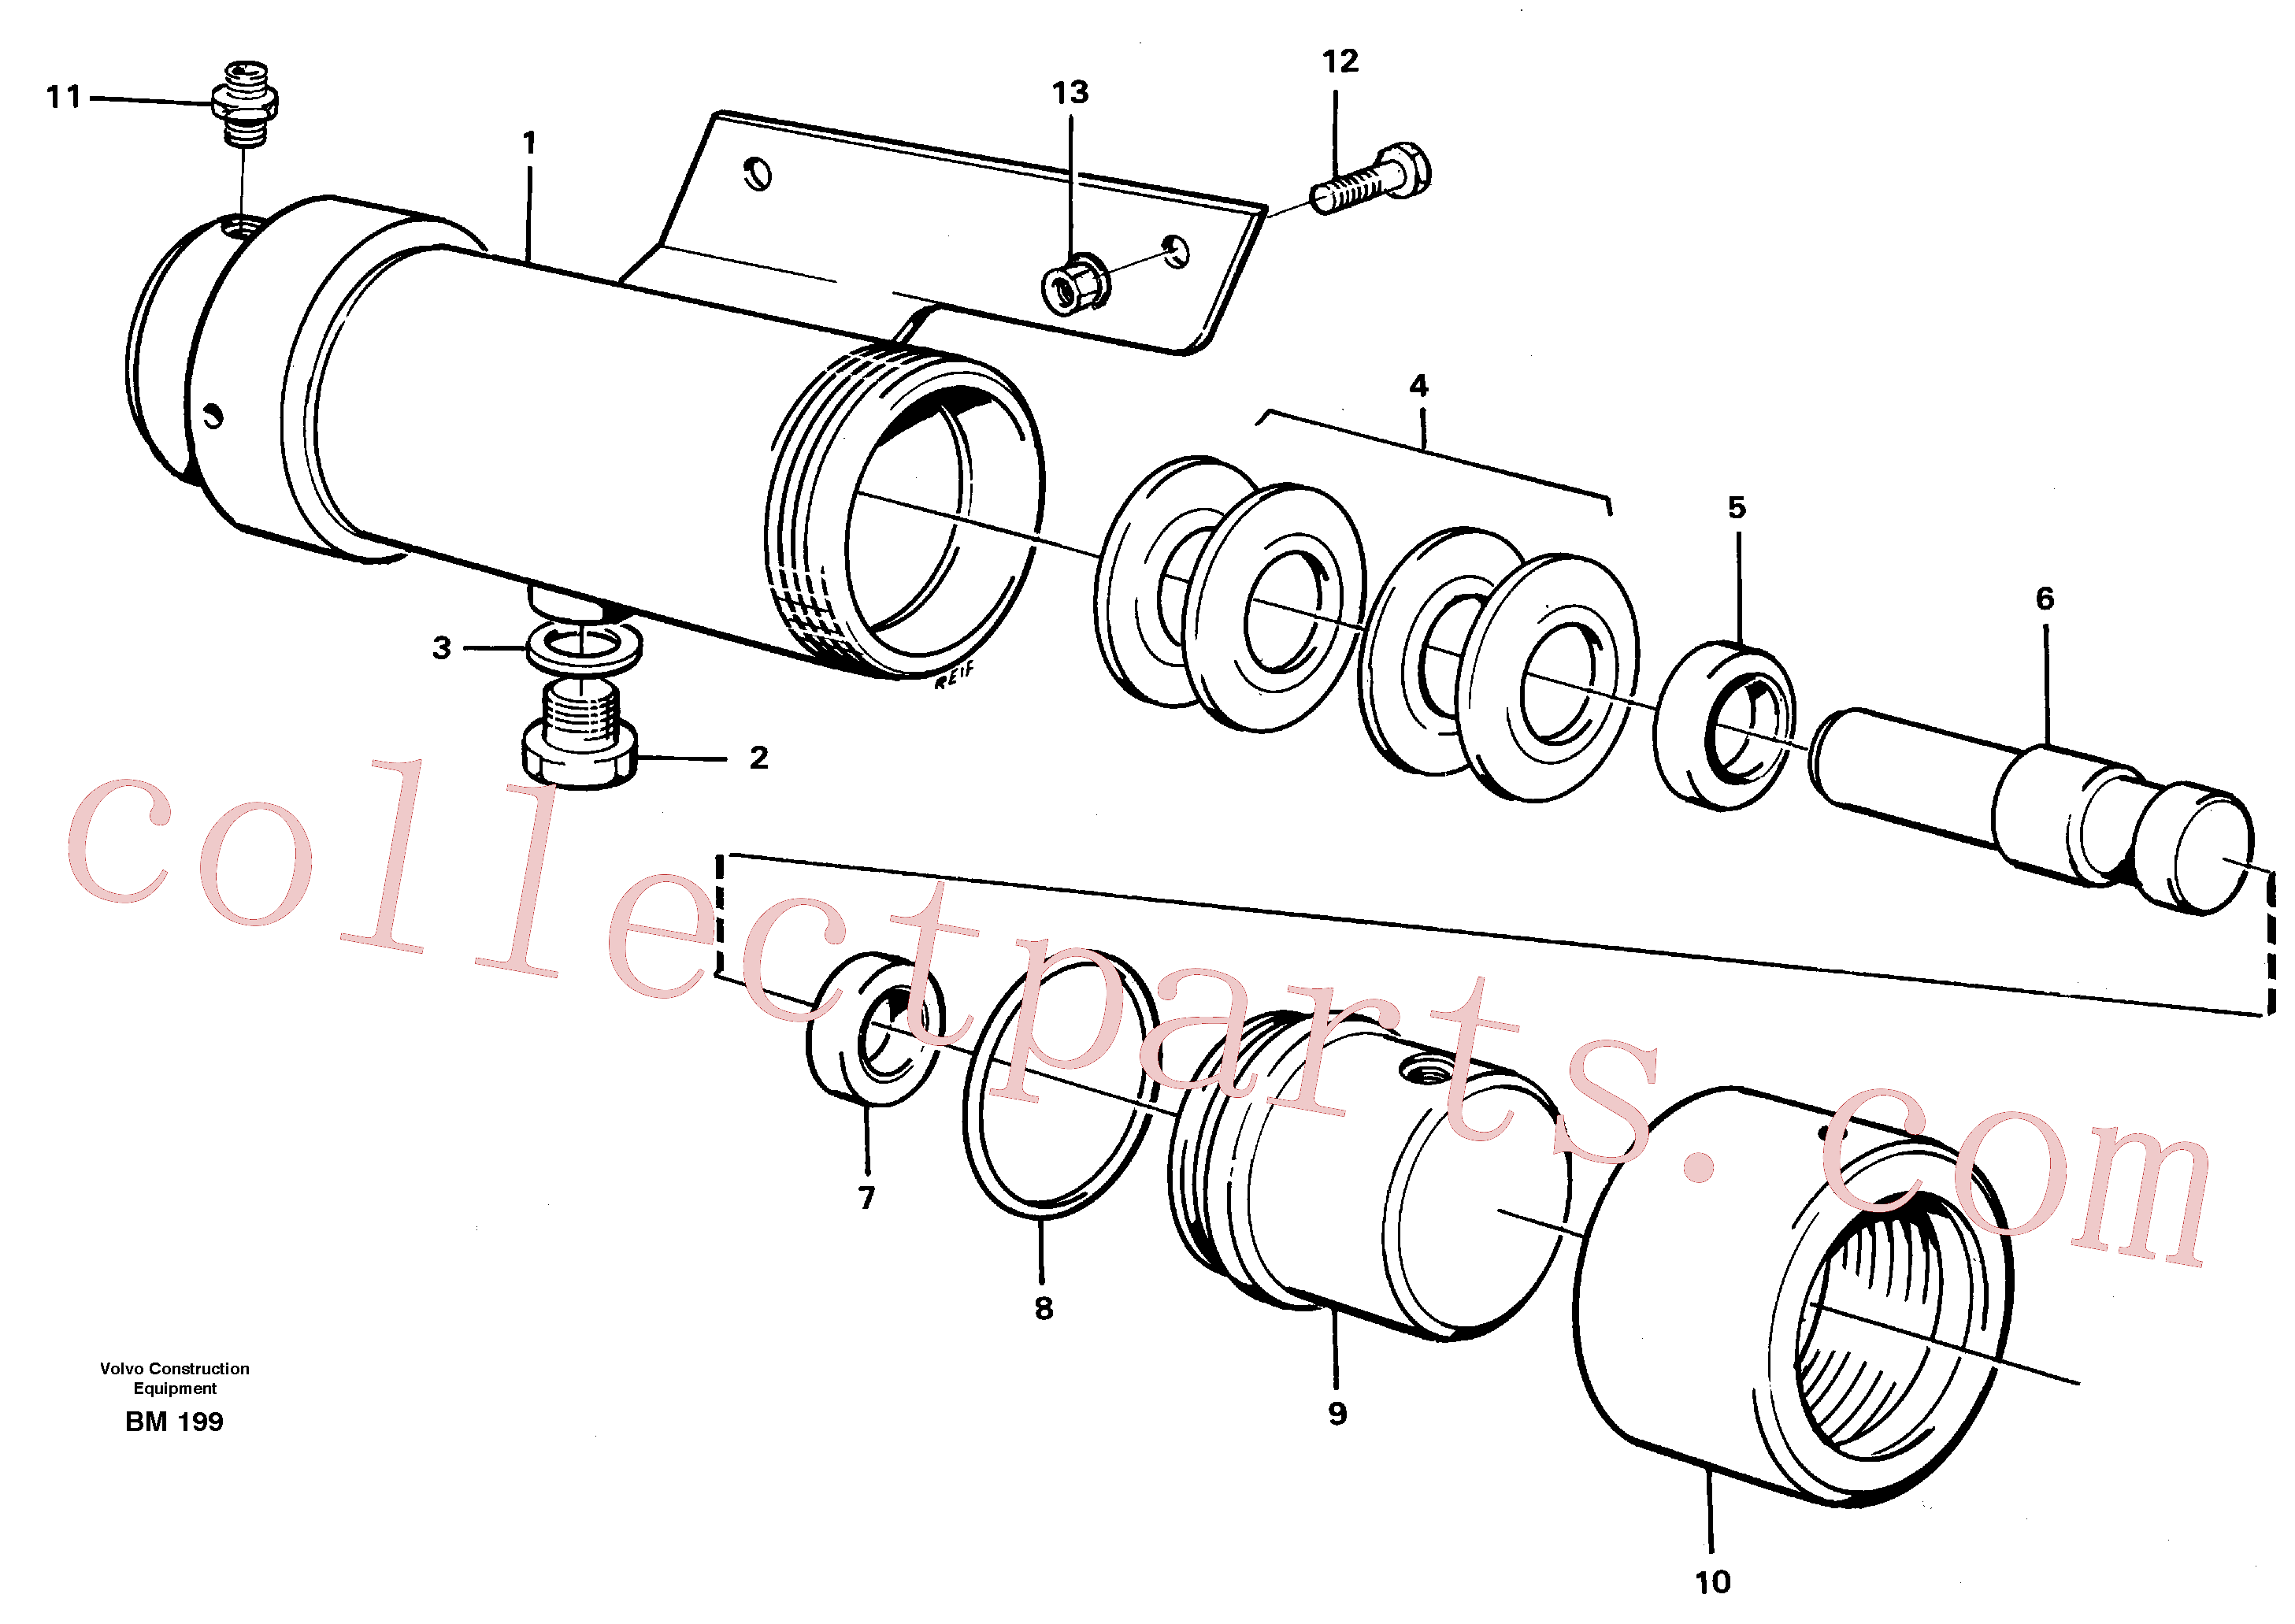 VOE925255 for Volvo Damping cylinder with fitting parts(BM199 assembly)